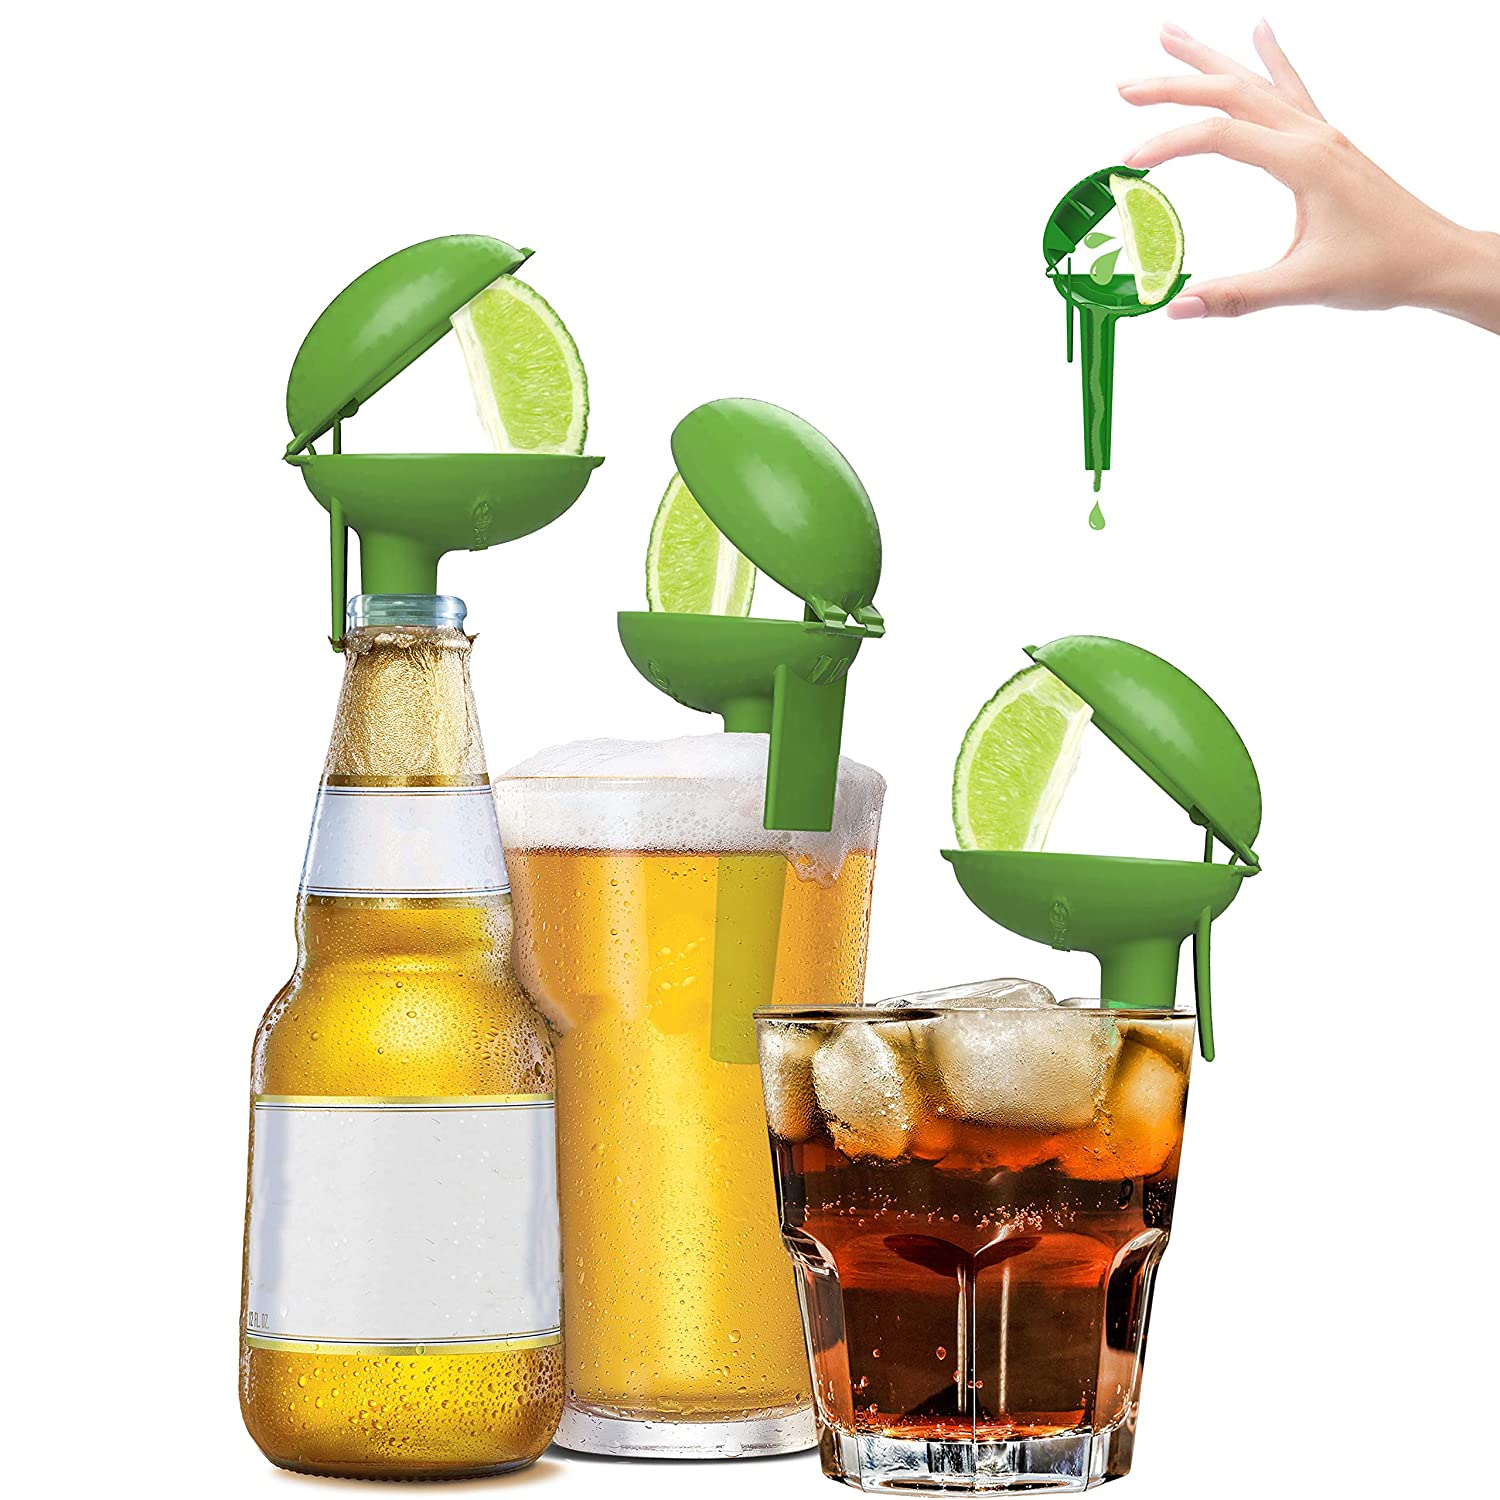 HeadLimes Clip-On Citrus Squeezer, Adds Lime or Lemon Directly to a Drink- a Fun Novelty Party Gift, Handheld Juicer or Bar Accessory, 8-pack (Lime Edition)